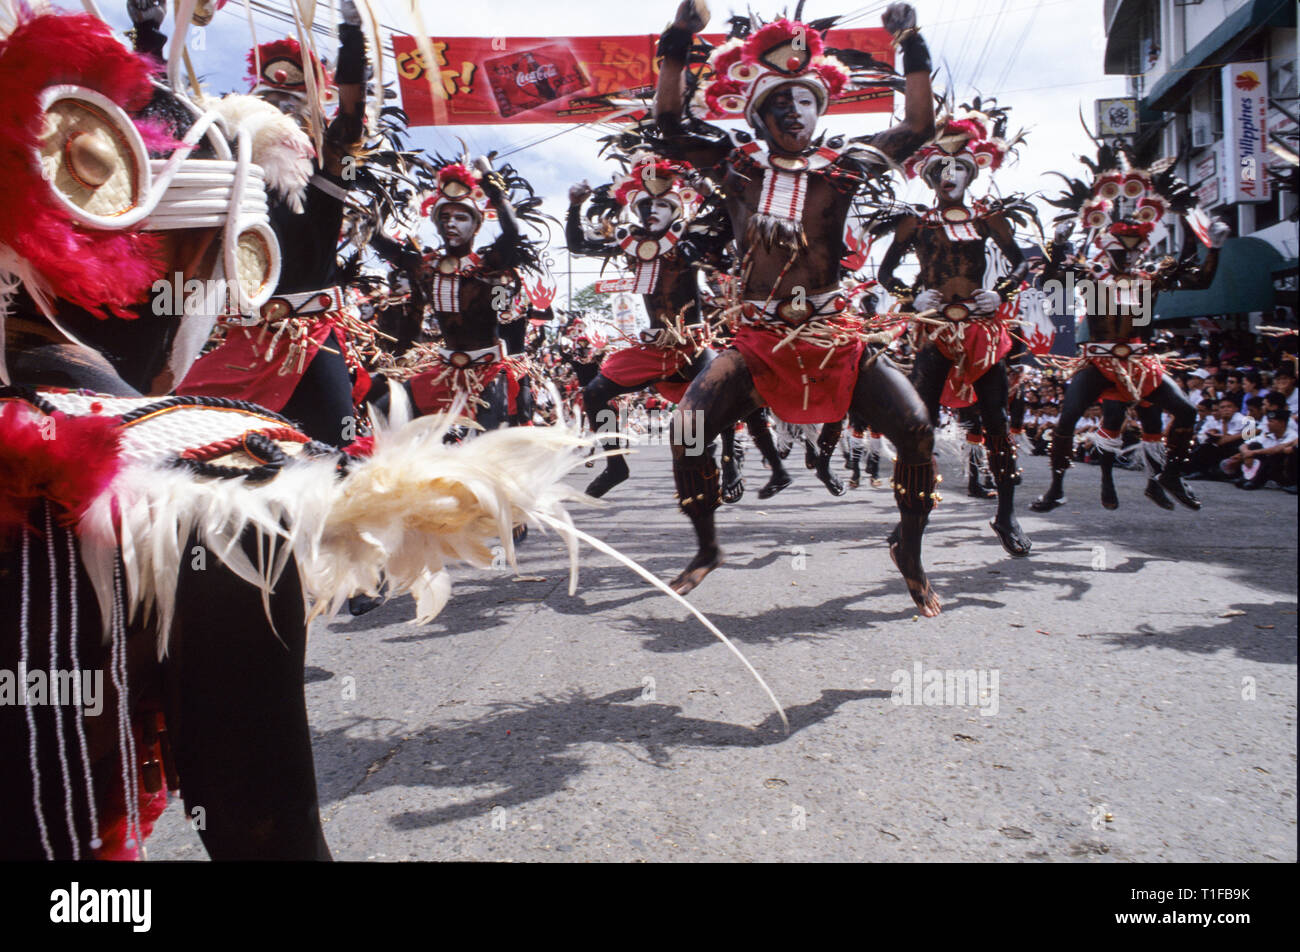 Kalibo, Philippines - 12 Januray 1999: People on costumes at the parade of Ati-Atihan festival in Kalibo, Philippines - Stock Image